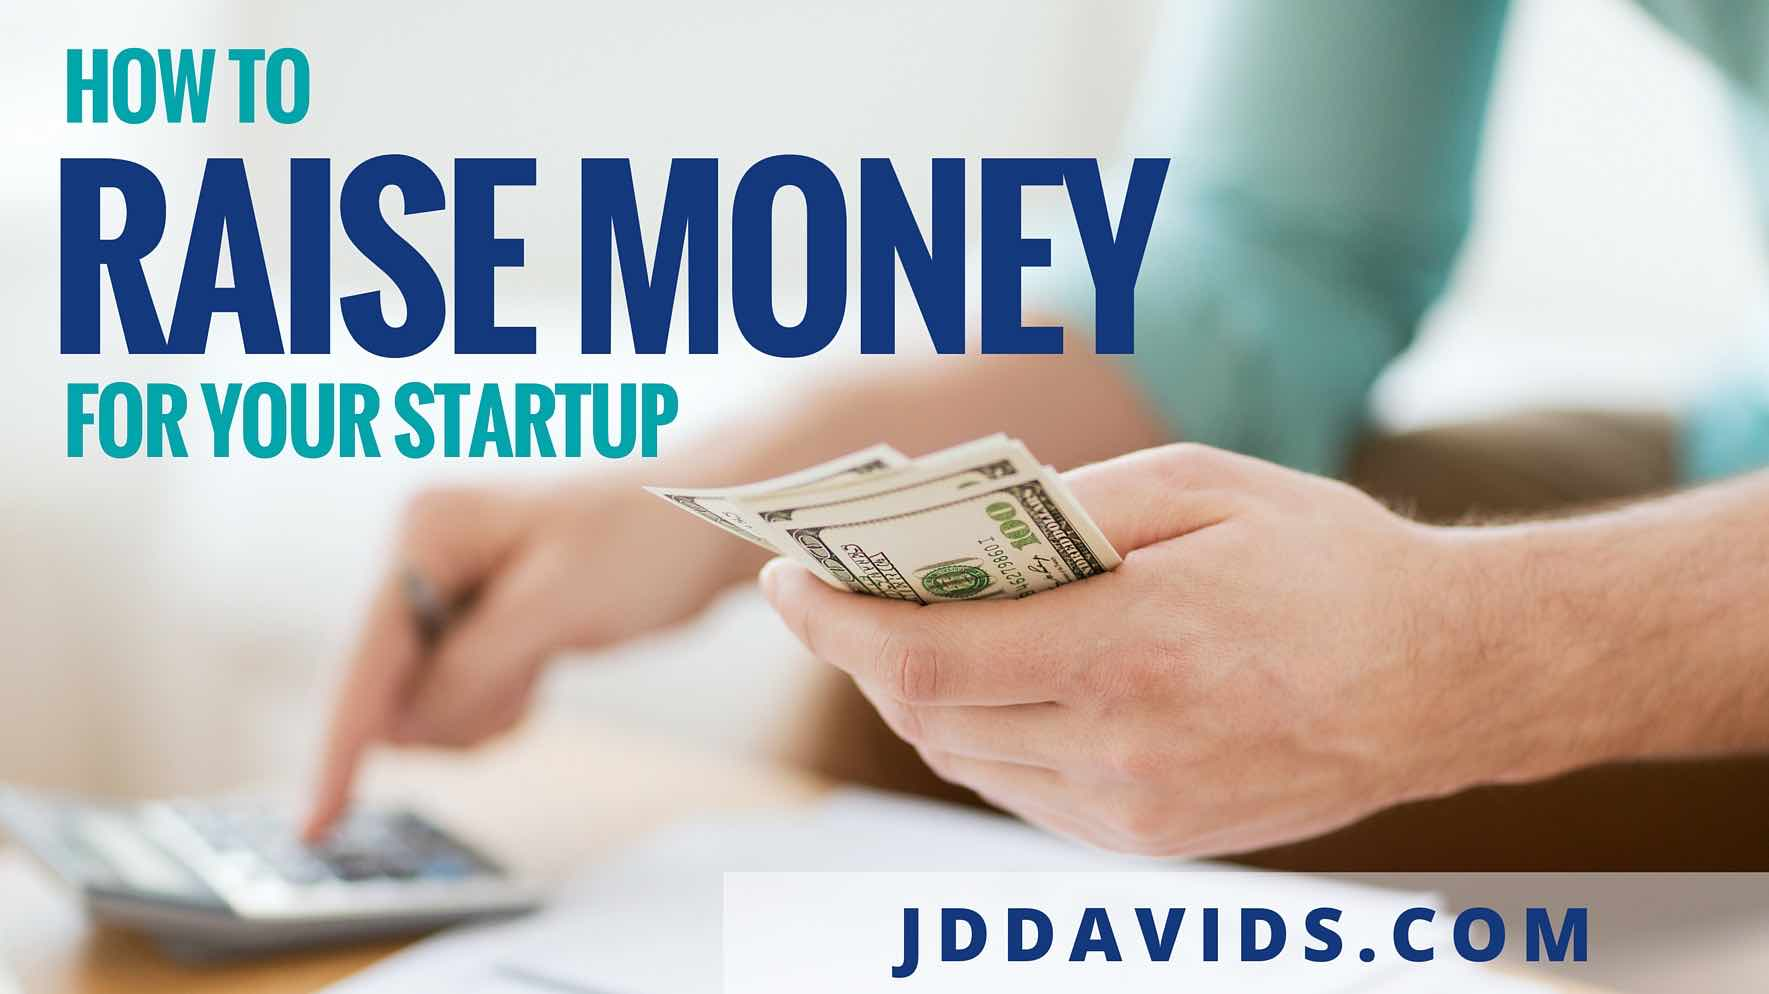 How to Raise Money for Your Startup